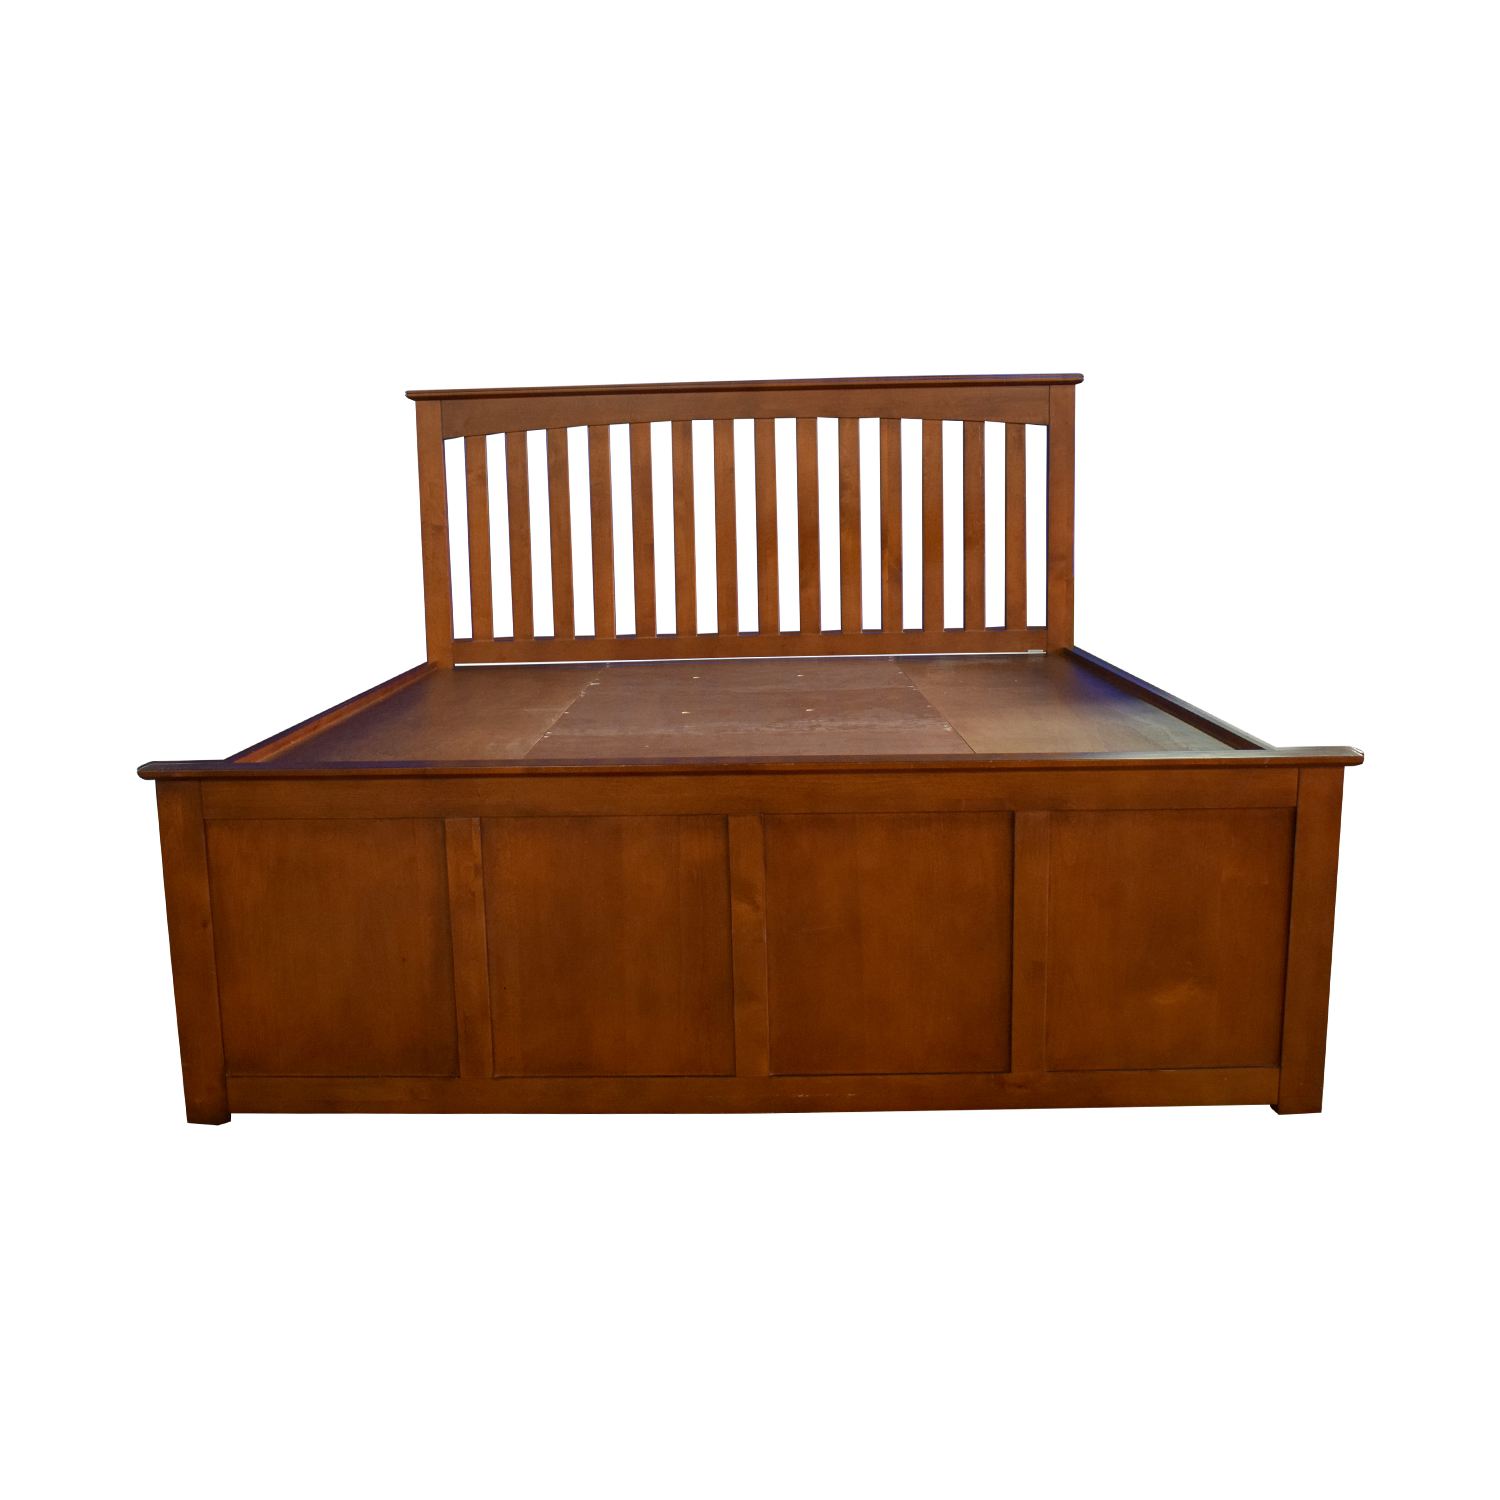 Raymour & Flanigan Raymour & Flanigan King Platform Bed Frame with Storage Drawers coupon